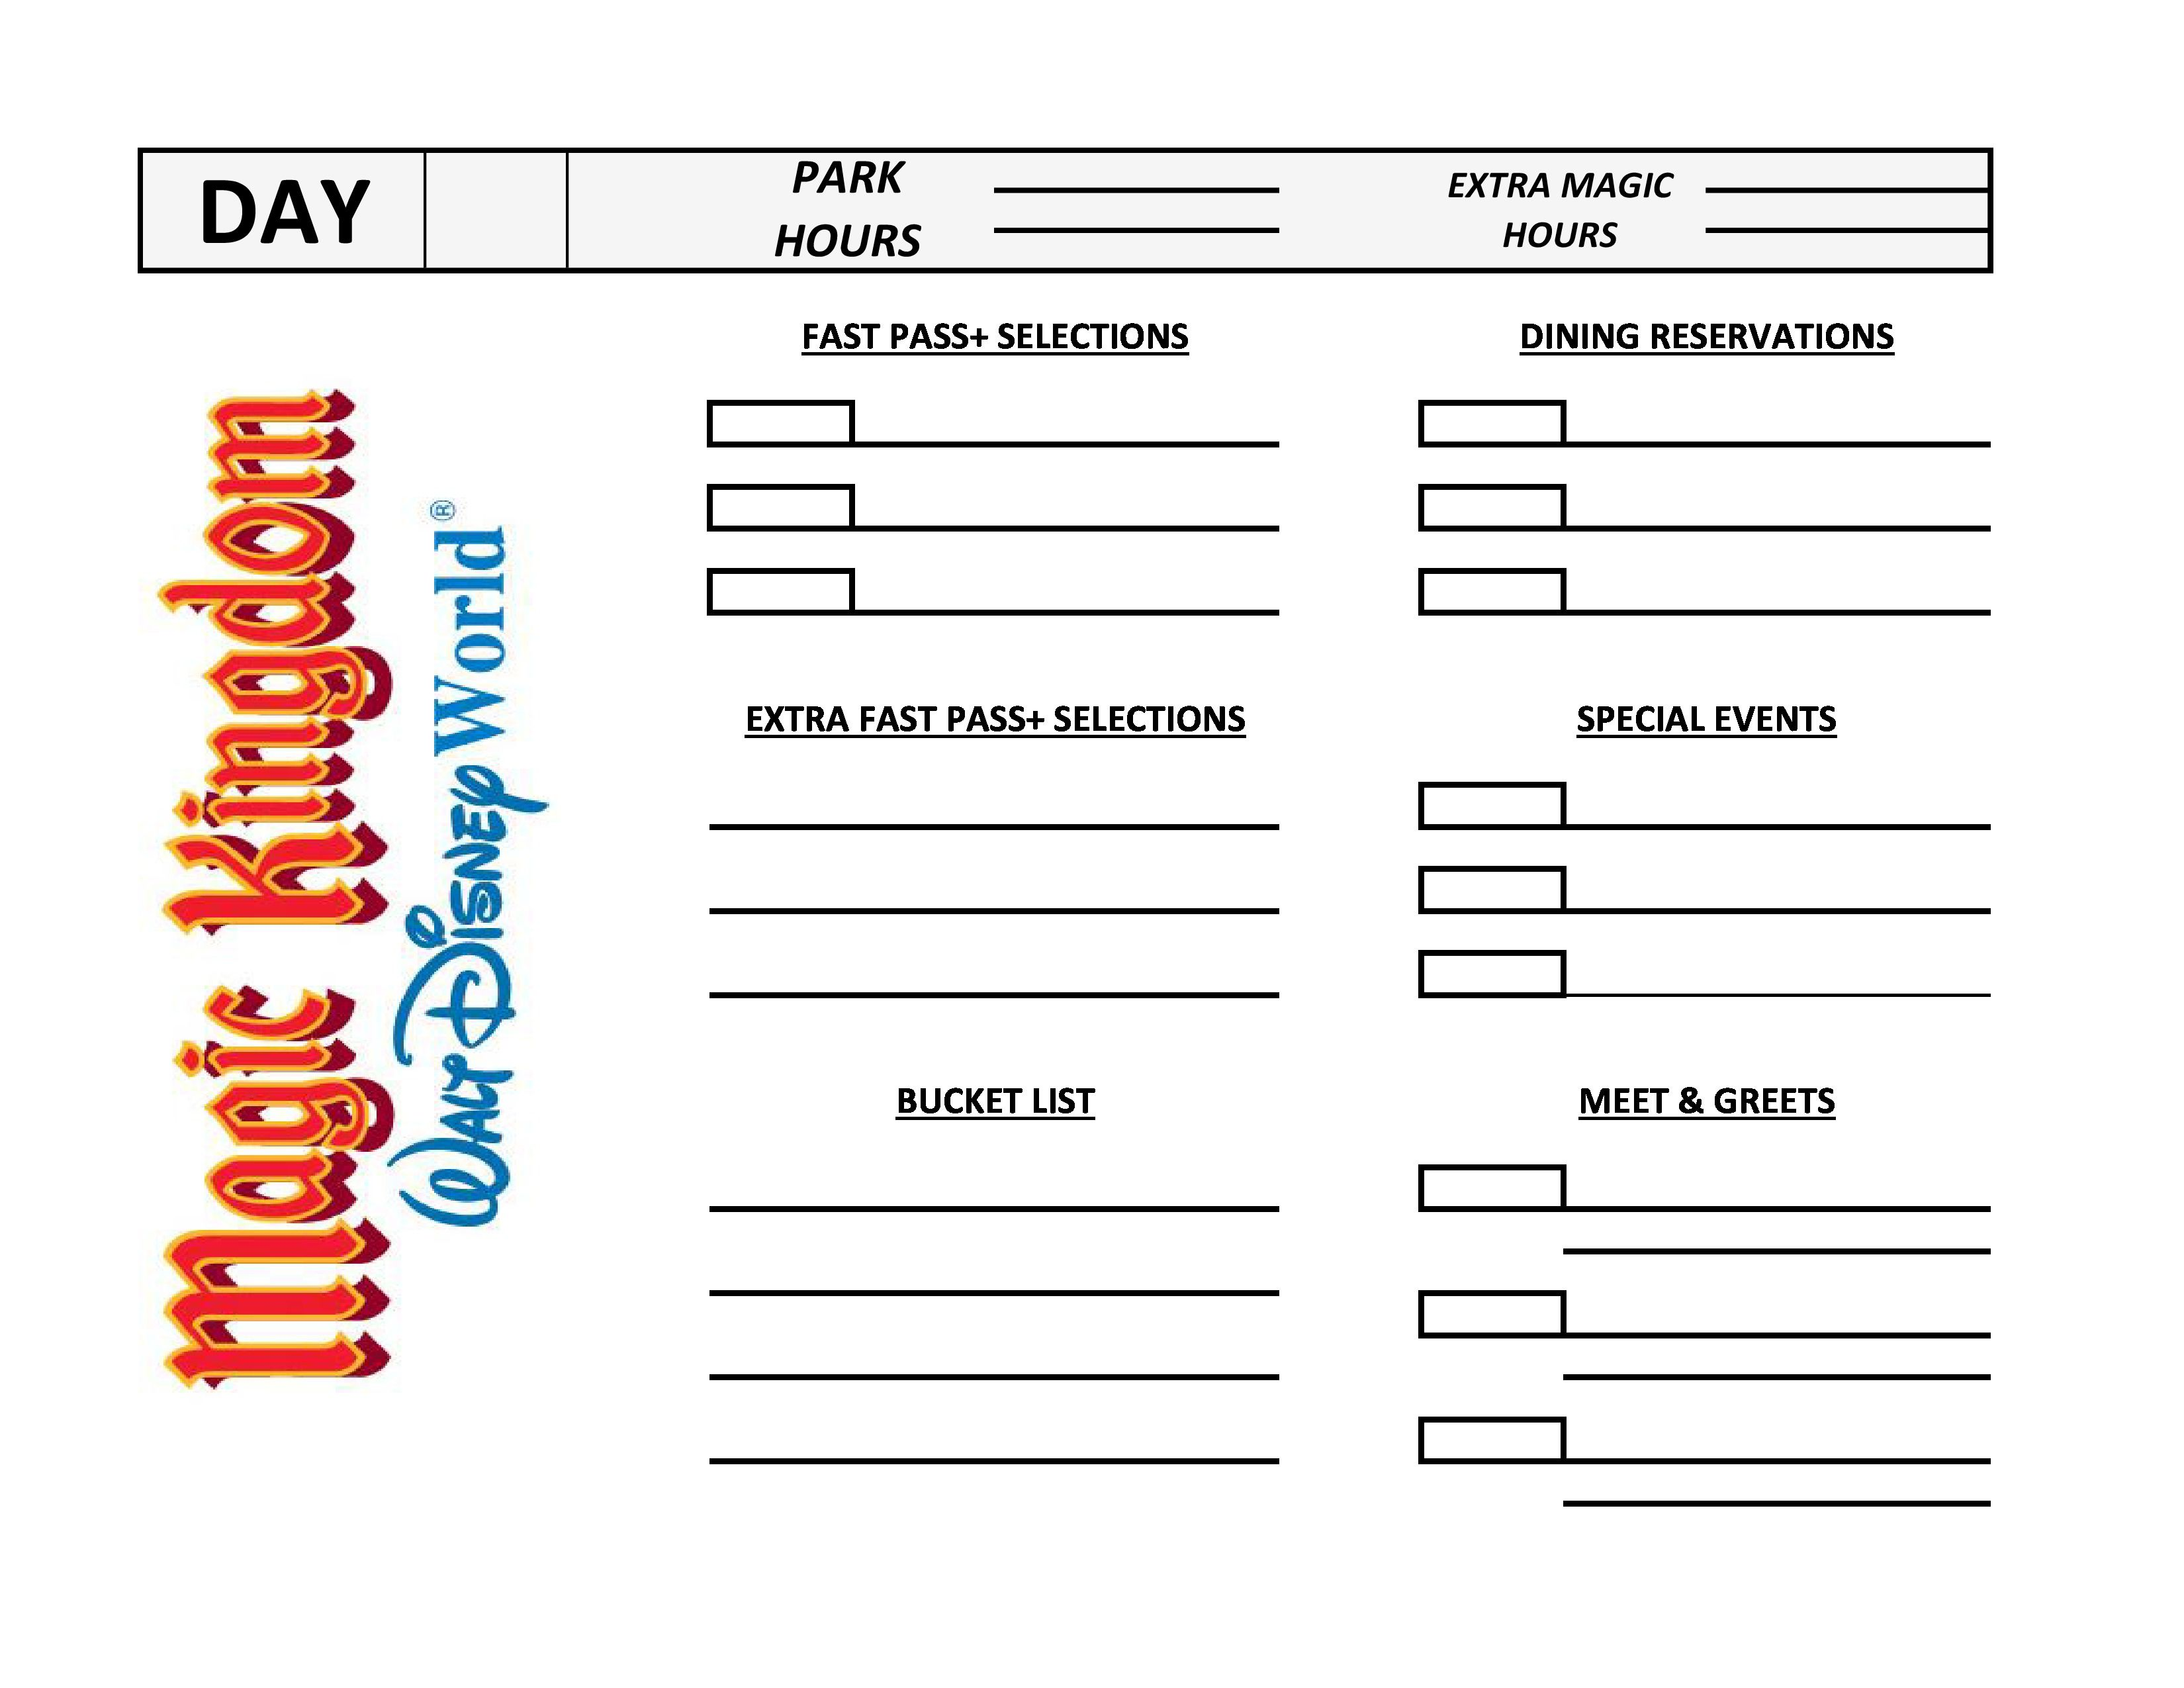 Itinerary Sheets I Came Up With